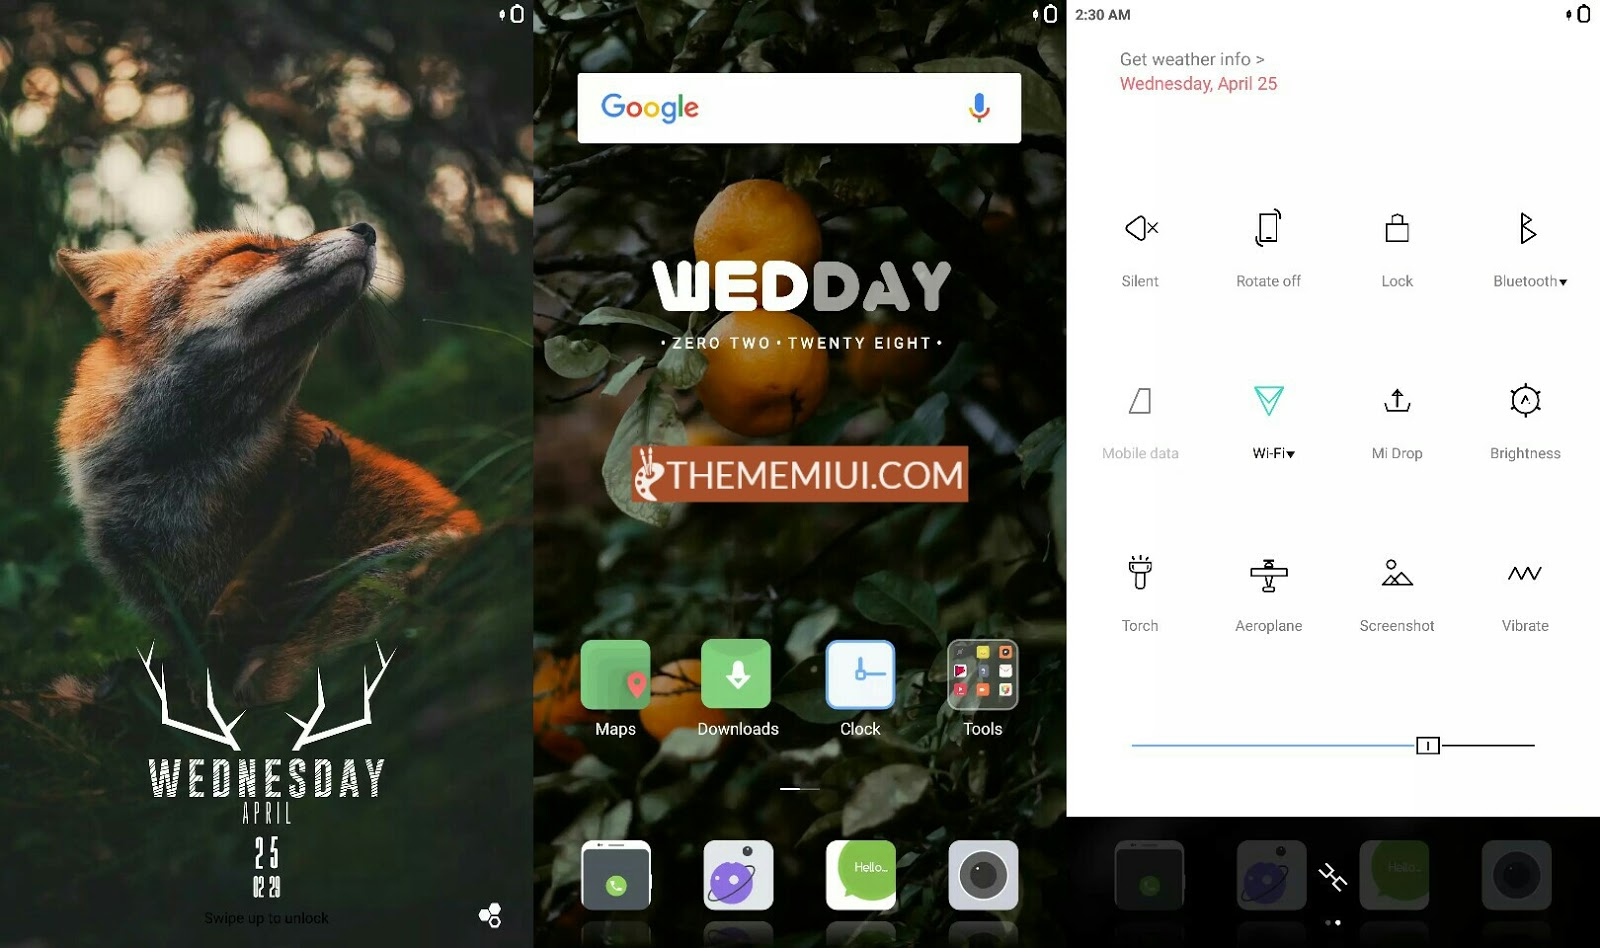 Flox Ui Light v3 MIUI 10 Theme thememiui.com